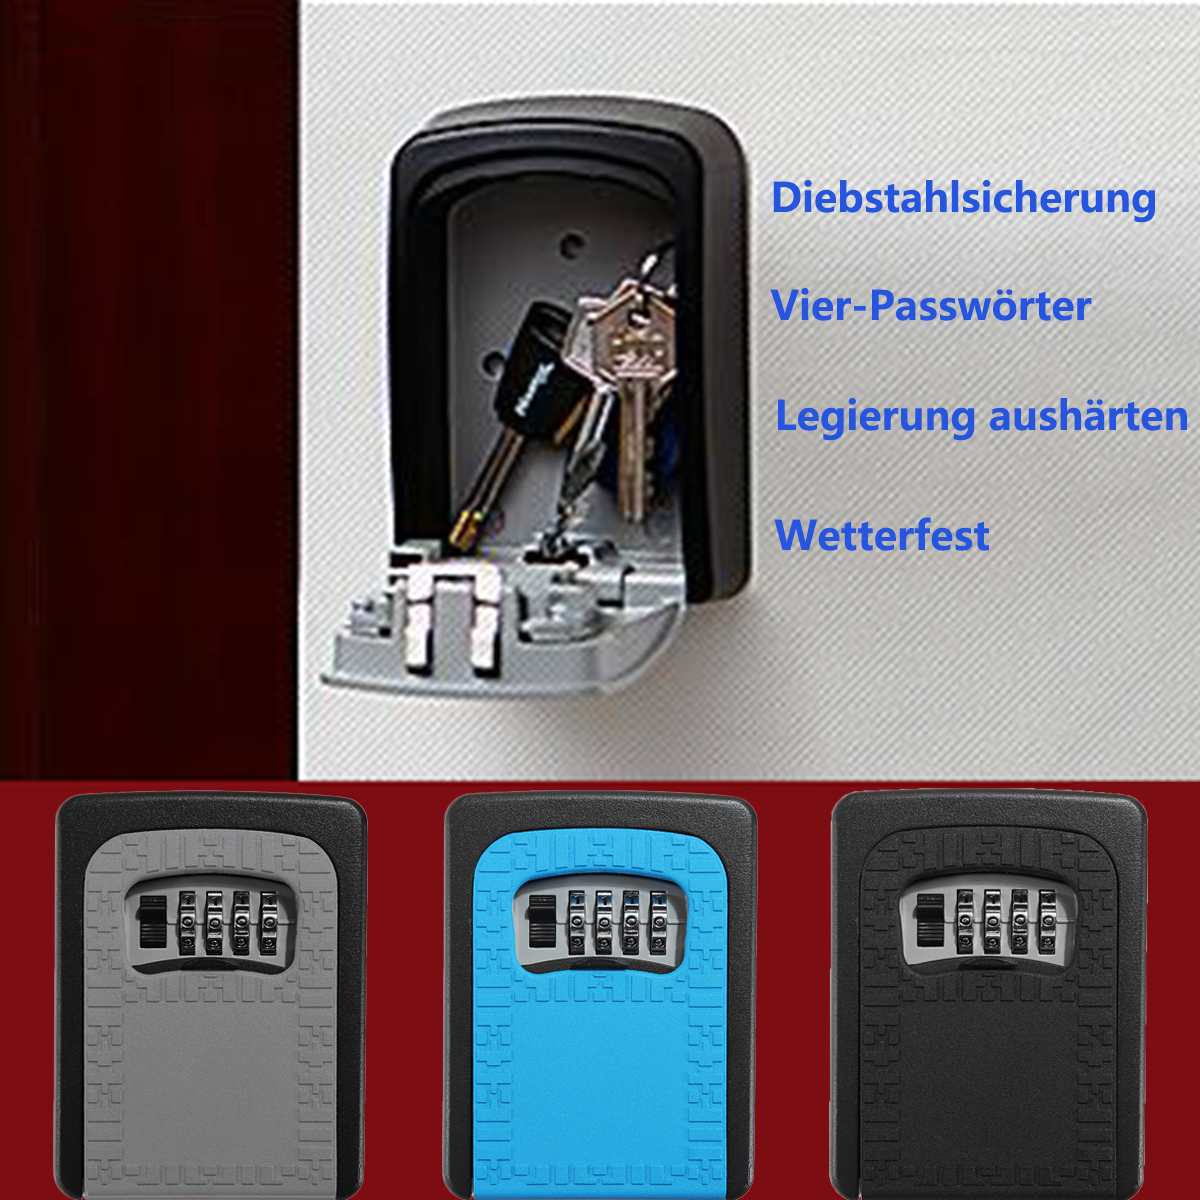 Home Keys Car Keys Protect Password Lock Outdoor 4 Digit Key Box Password Combination Security Storage Safe Waterproof Lock Wall